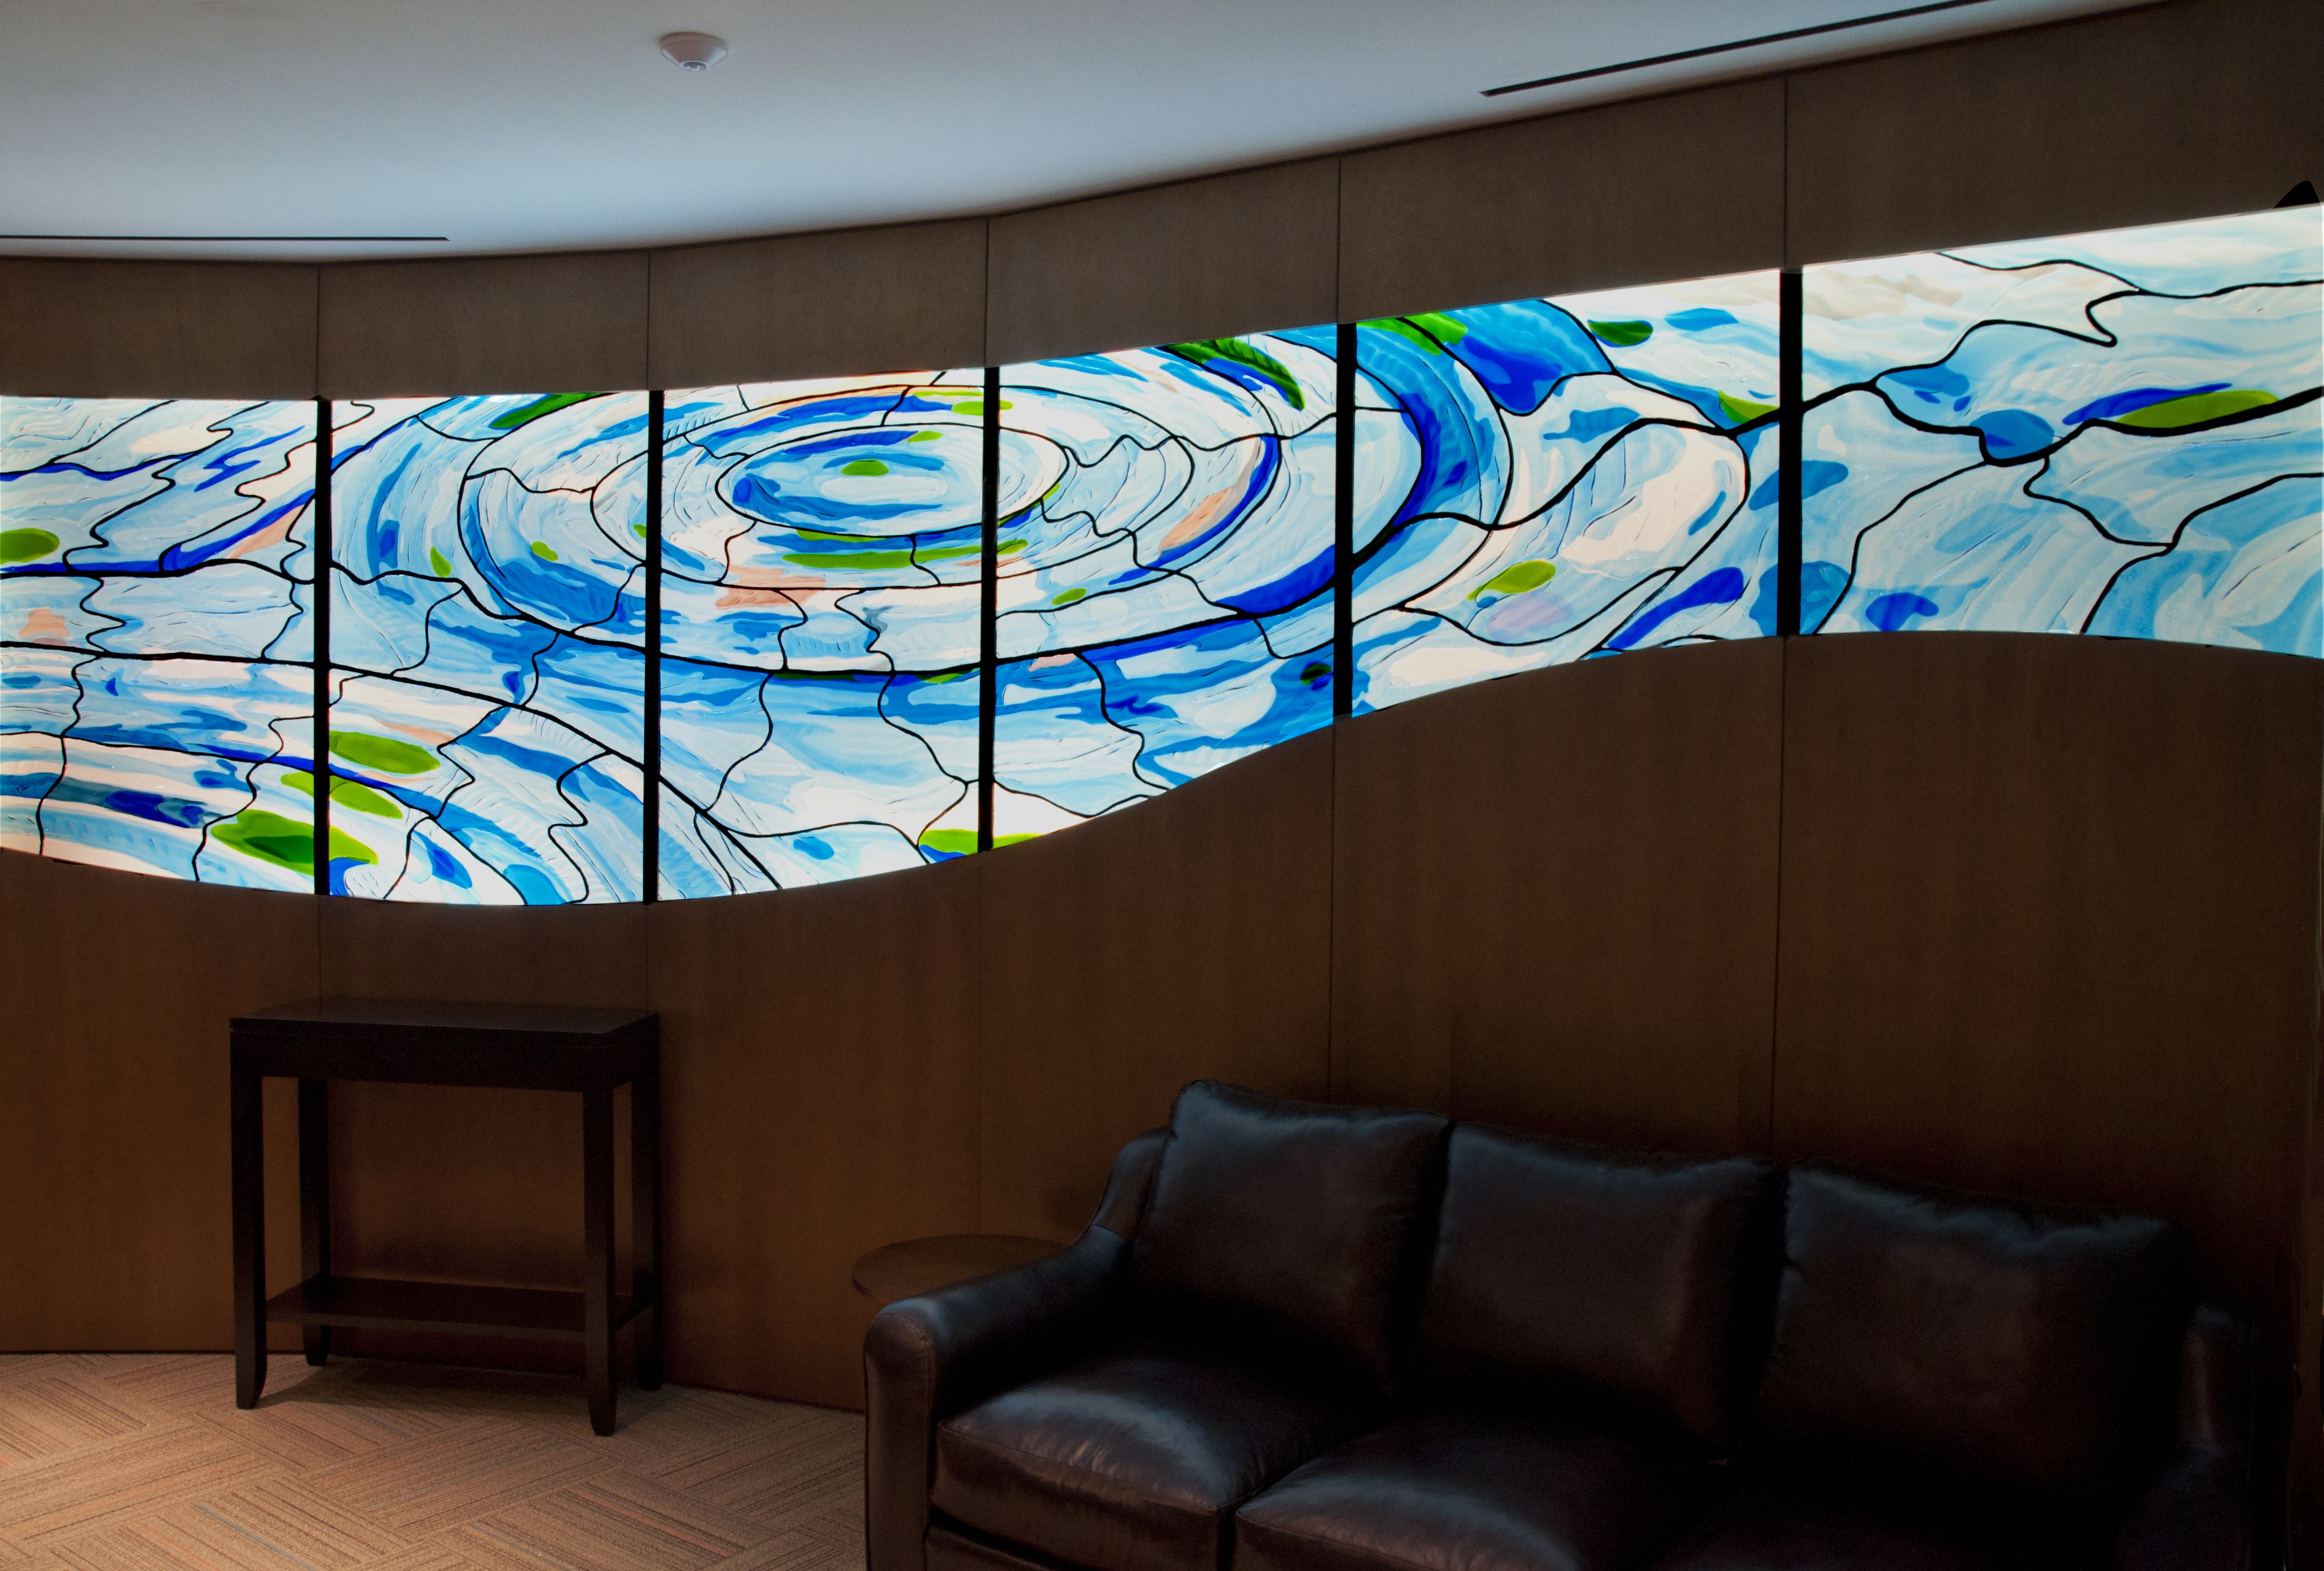 Ed Hoy's Art Glass Installation in Ronald McDonald House in Chicago, IL